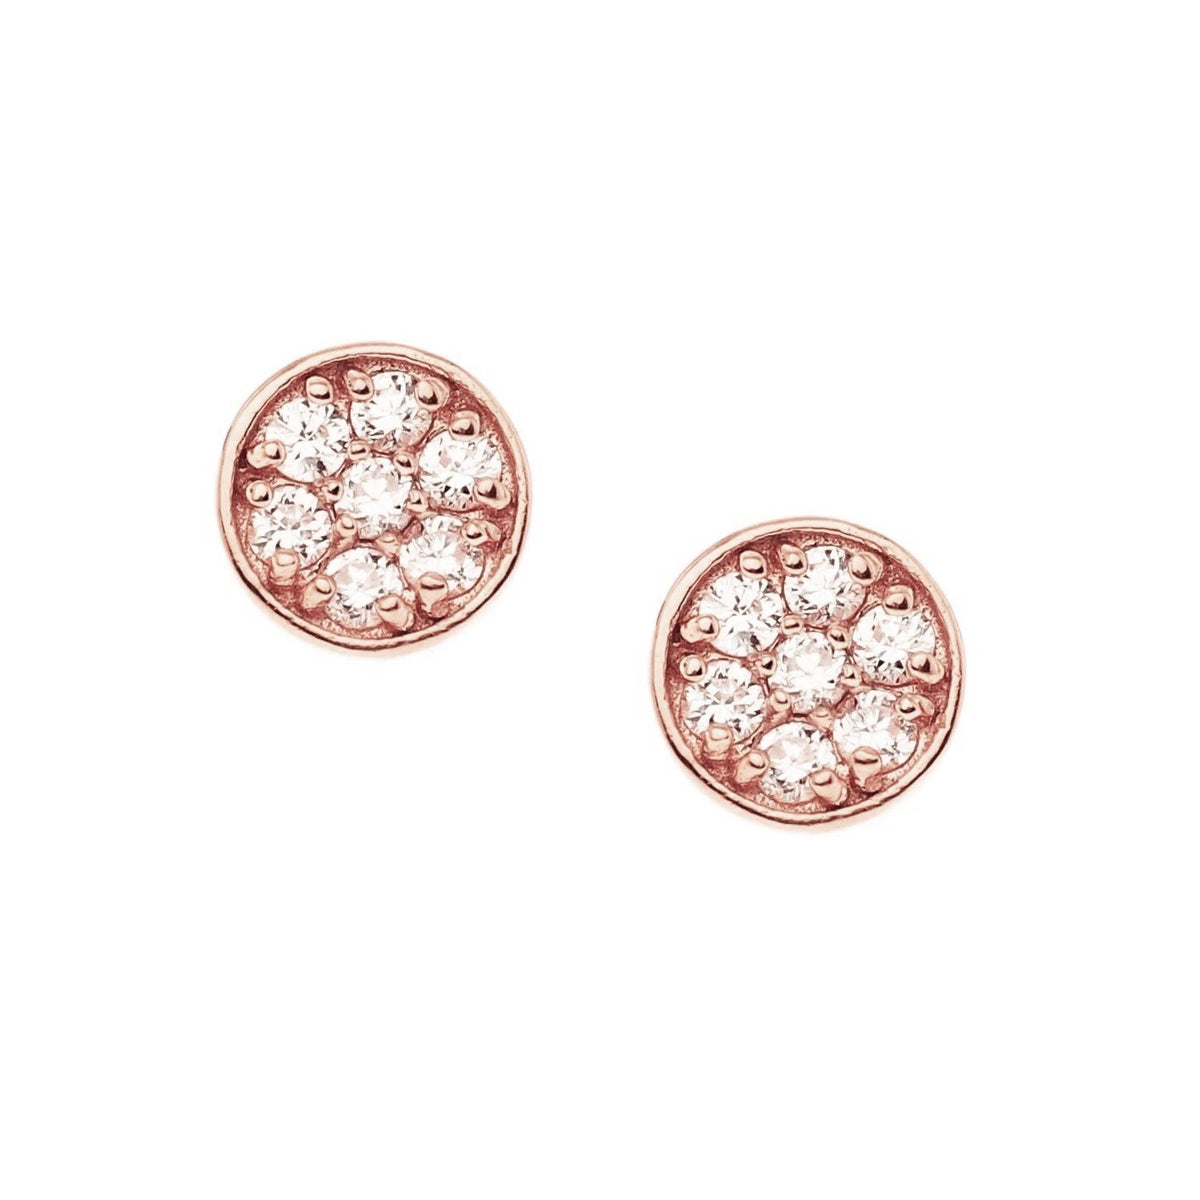 MINI LOVE CIRCLE STUDS - CUBIC ZIRCONIA & ROSE GOLD - SO PRETTY CARA COTTER